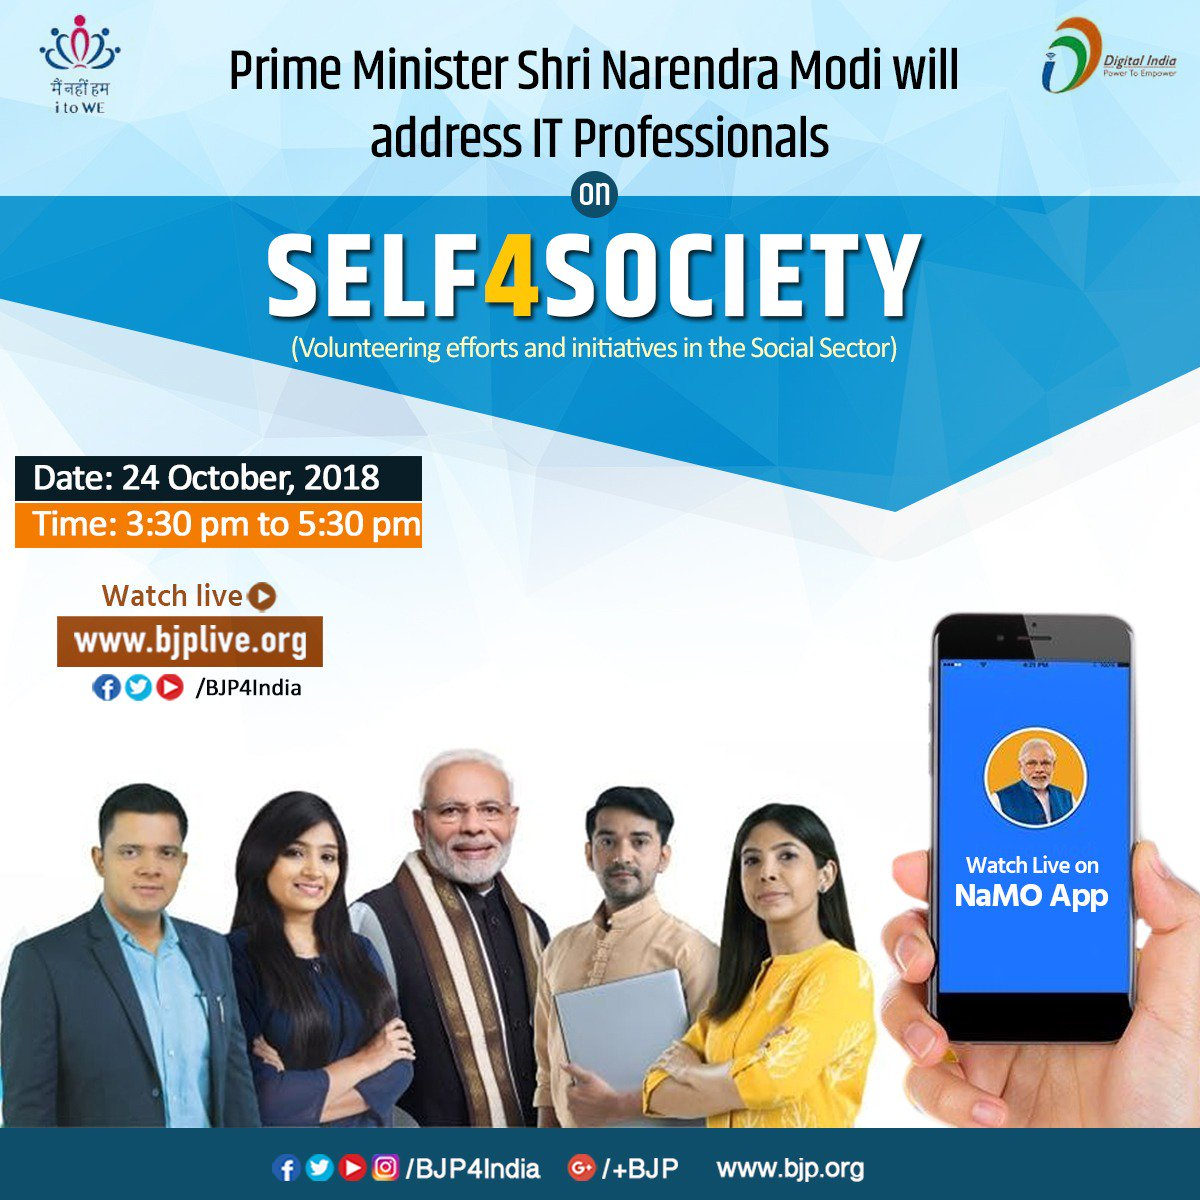 Prime Minister Shri @narendramodi will hold a townhall with IT professionals on 24th October 2018 from 3.30 pm onwards. Watch LIVE at NaMo app and all @BJP4India's social media channels. #Self4Society